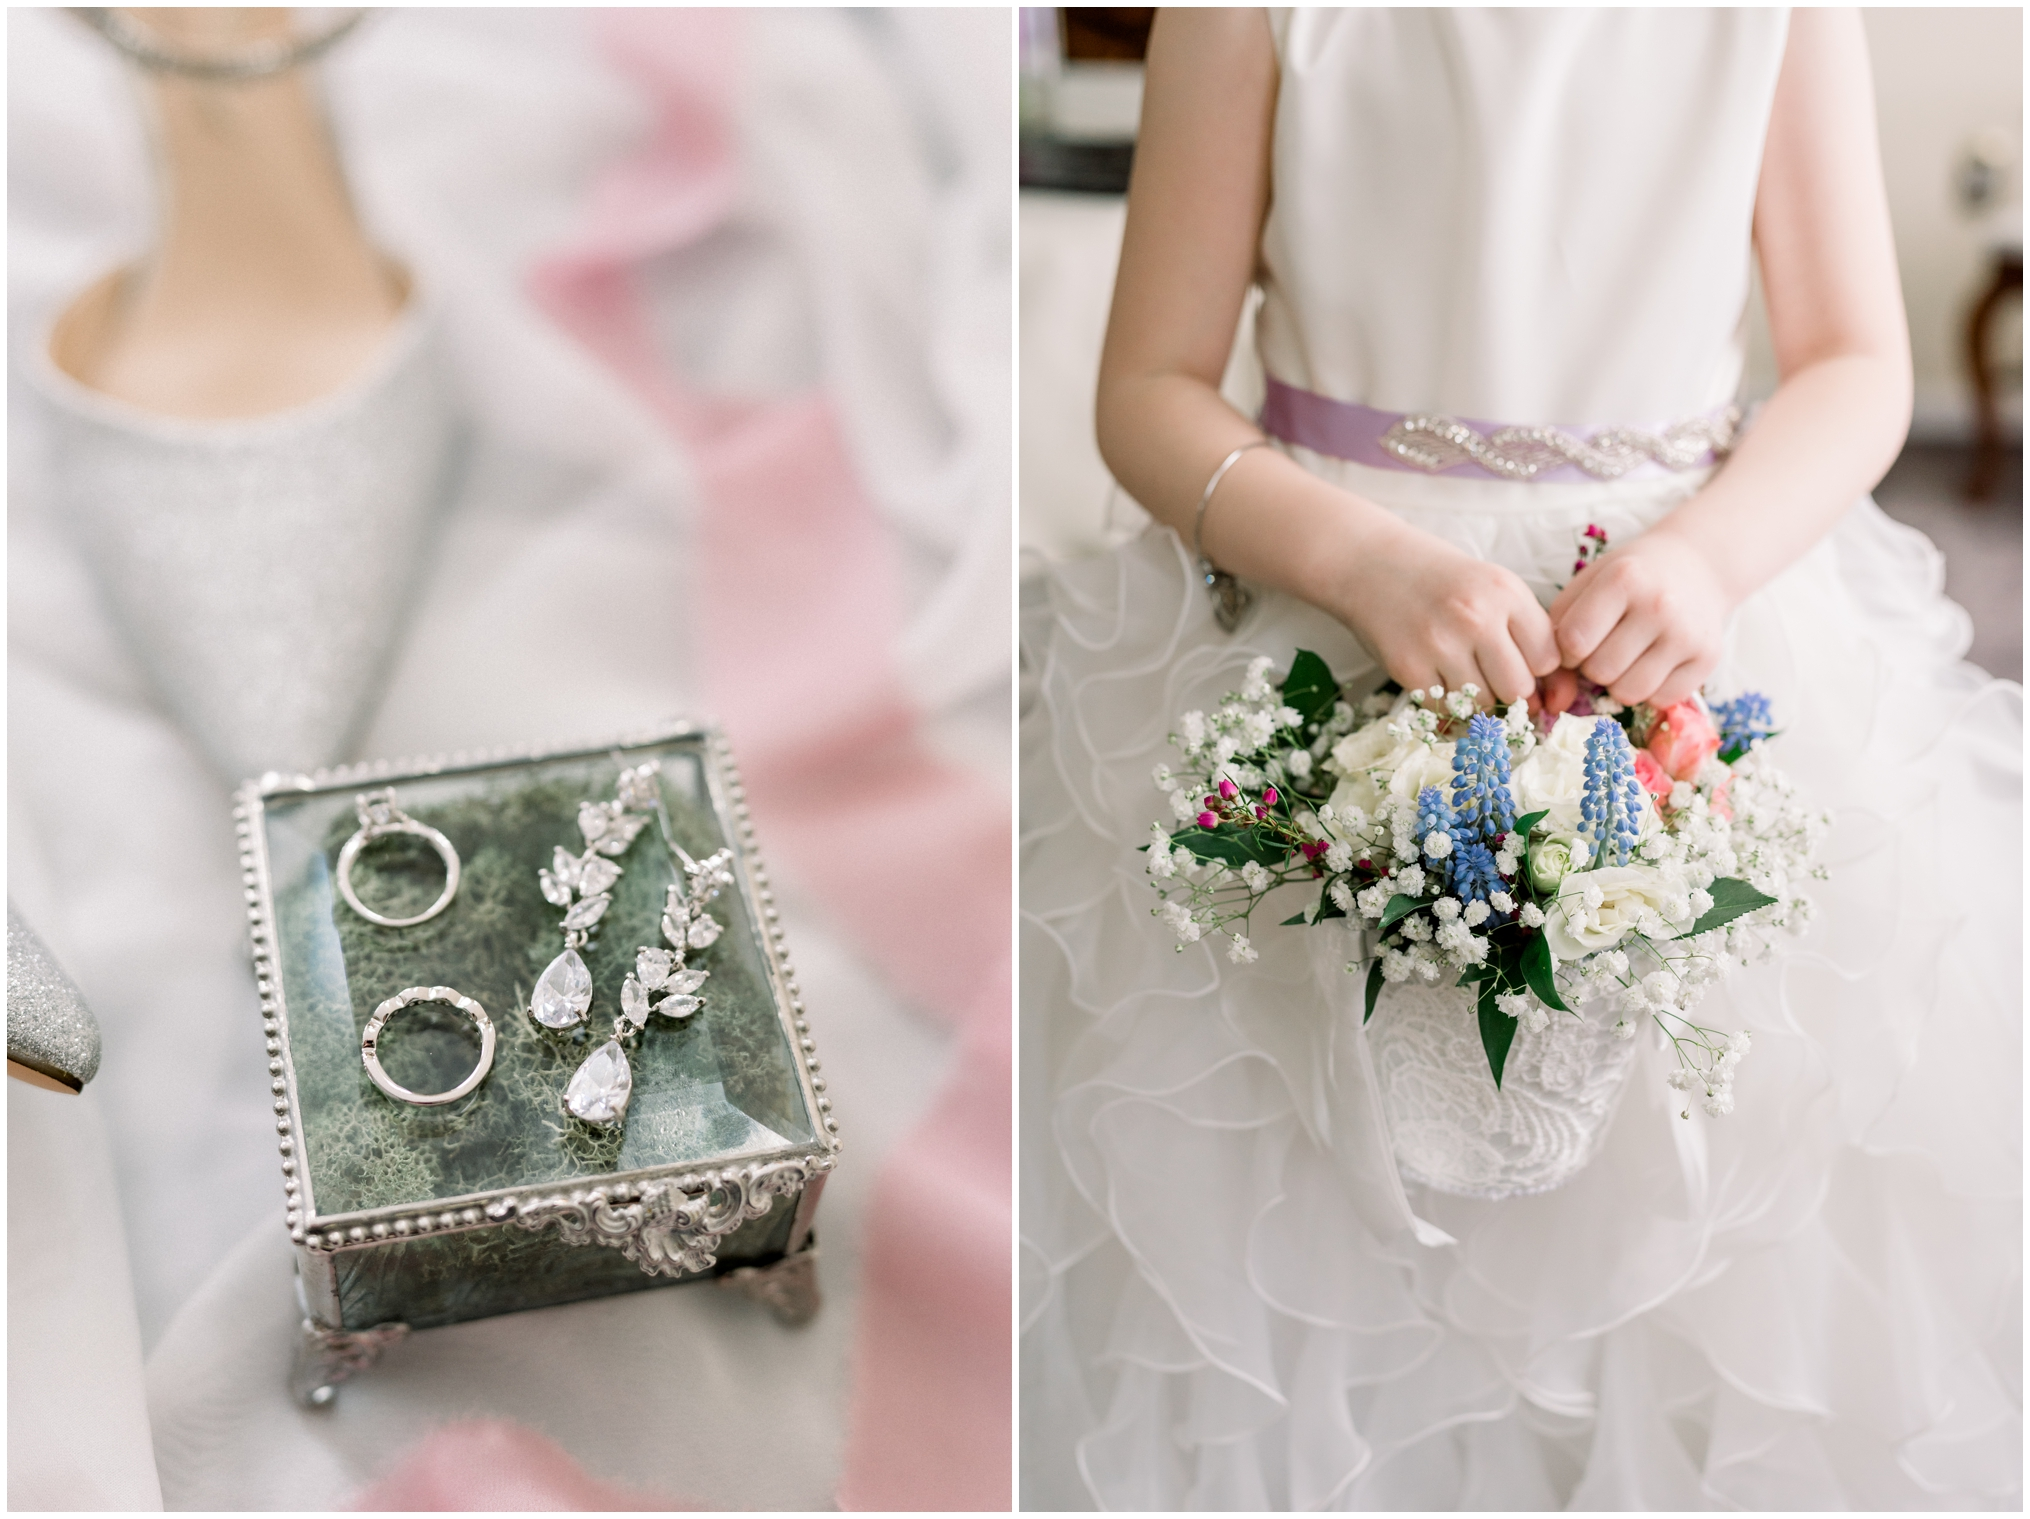 Krista Brackin Photography | April Wedding at The Carriage House at Rockwood Park_0005.jpg